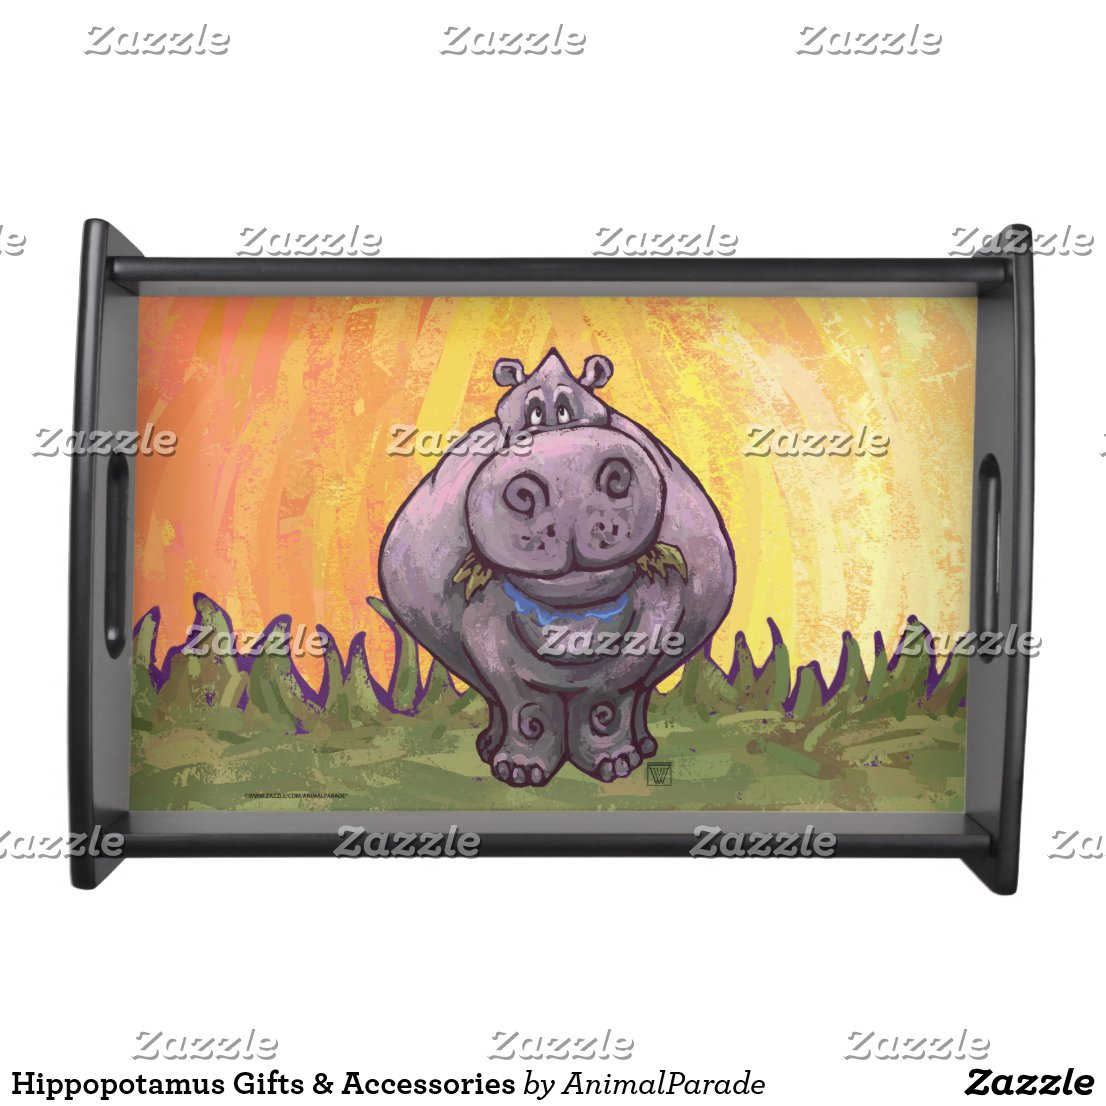 Hippopotamus Gifts & Accessories Serving Tray